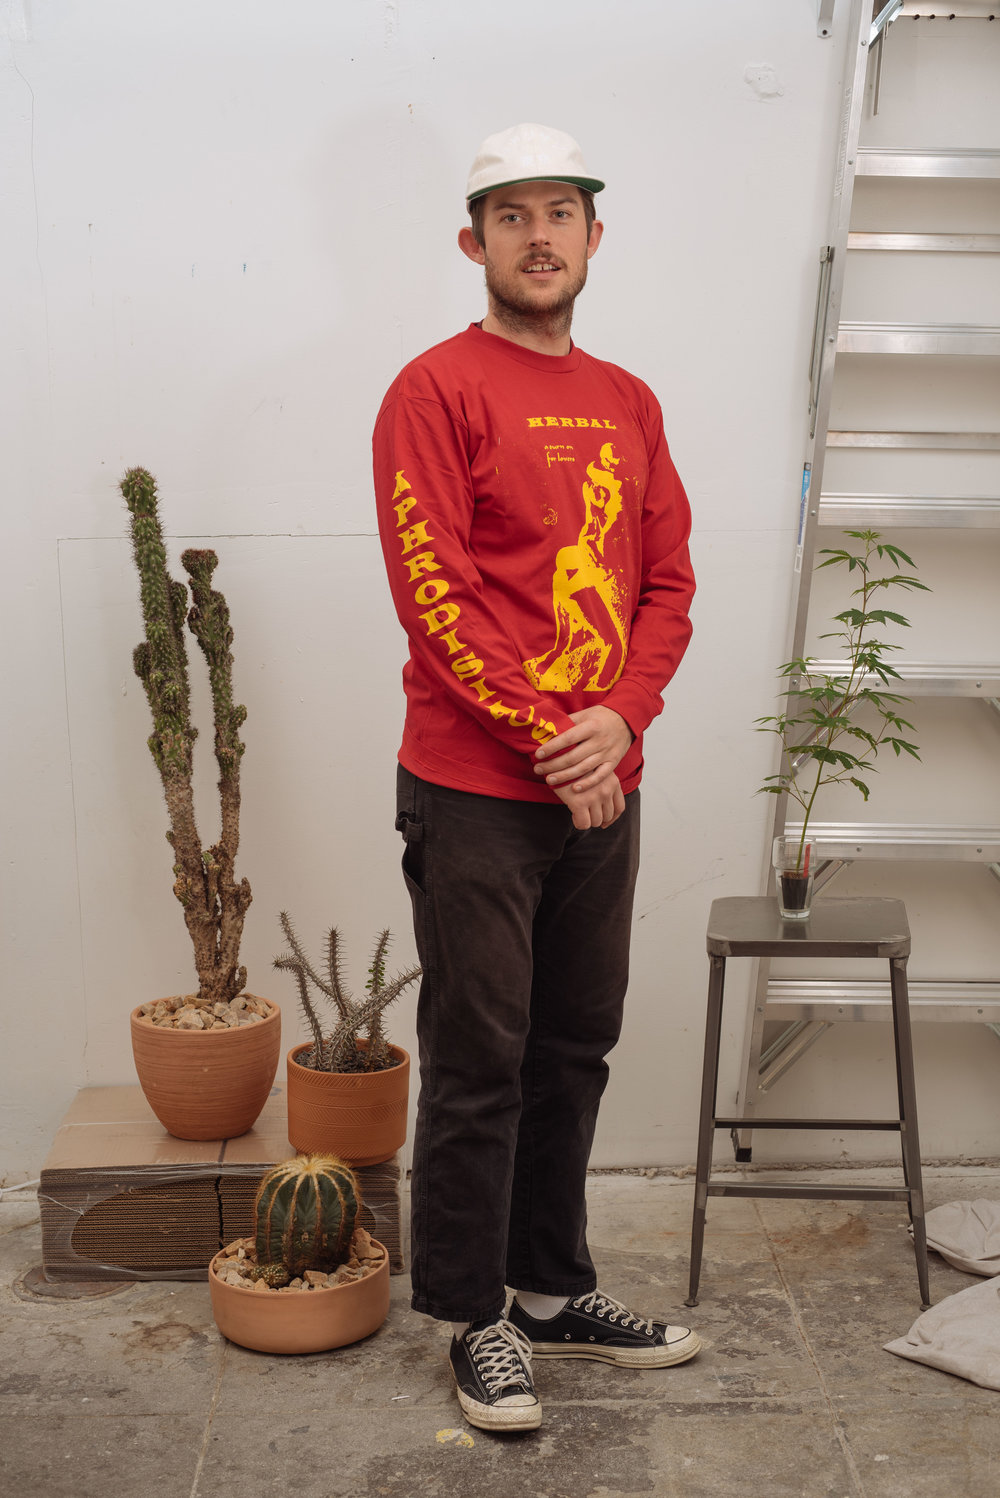 Midori San Cap - Natural   Aphrodisiacs Longsleeve - Red   Green Dickies - Black